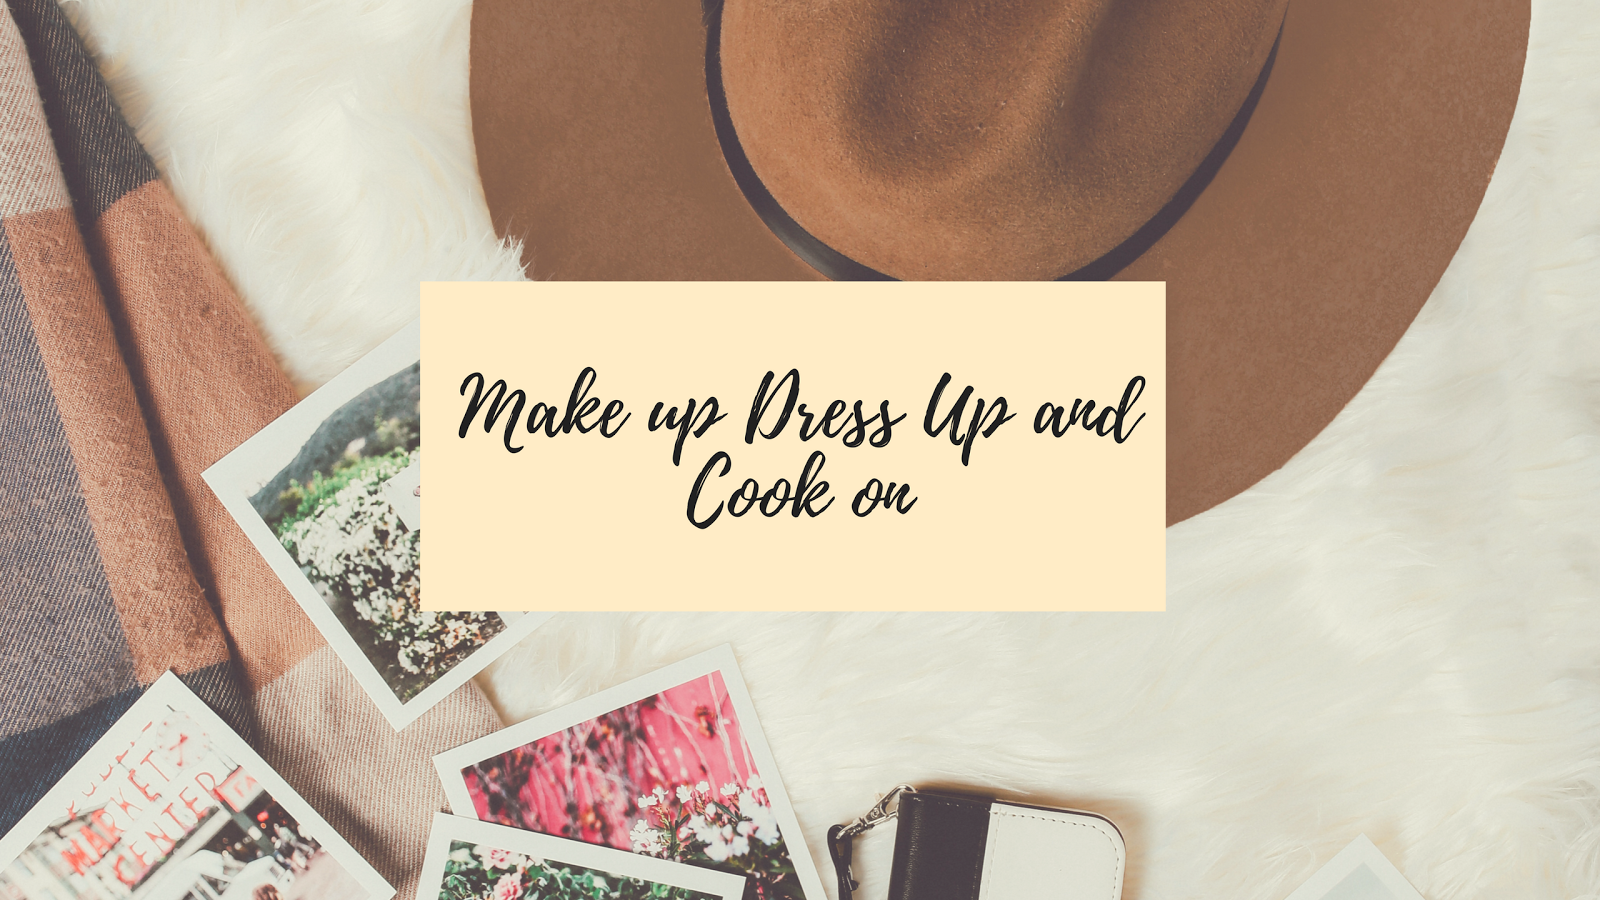 Make up Dress up and Cook on